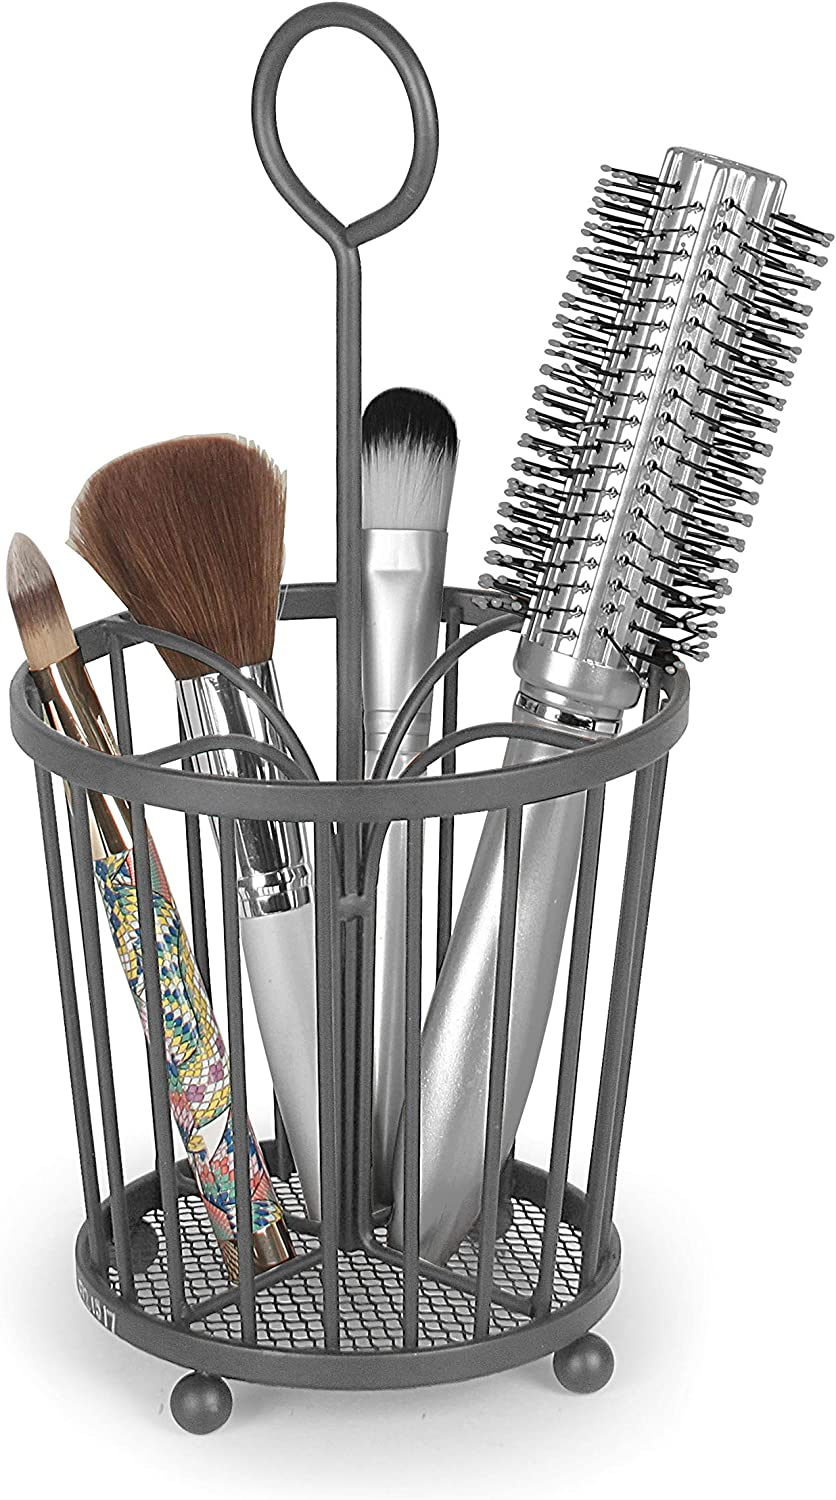 Takyl Home Metal Beauty Bathroom & Cosmetic Vanity Organizer Caddy & Accessory Storage Tote for Makeup, Blush, Eyeshadow, Bronzer, Brushes, Hair Care, Teasing Brush & Comb Holder, Dark Gray